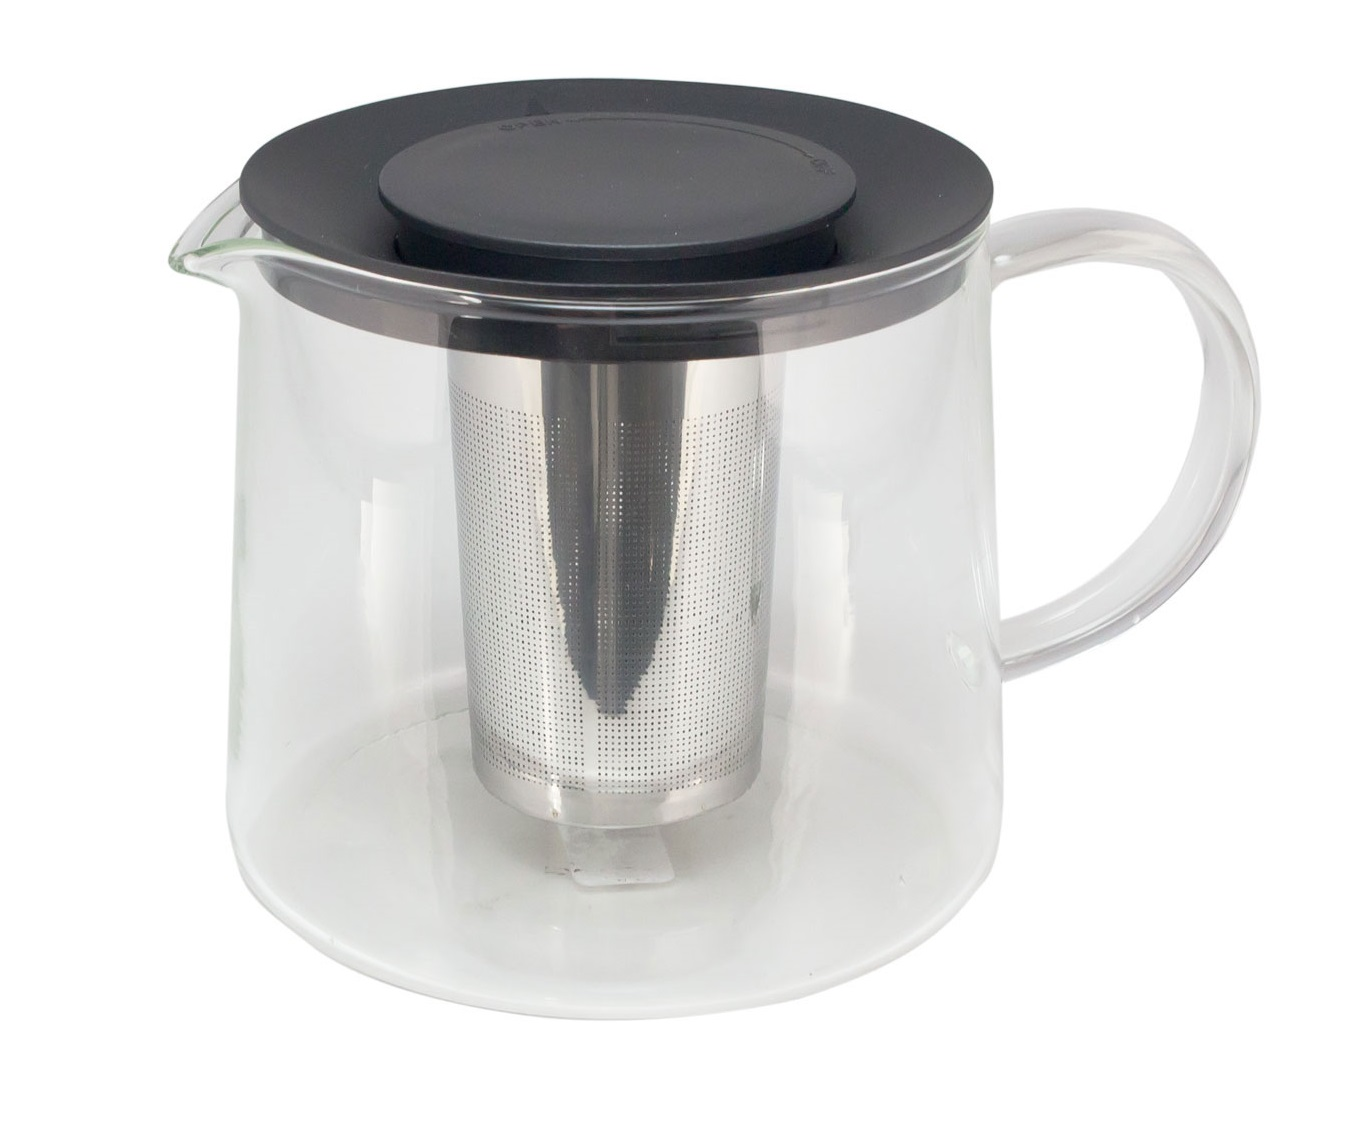 theepot_glas_150cl.jpg